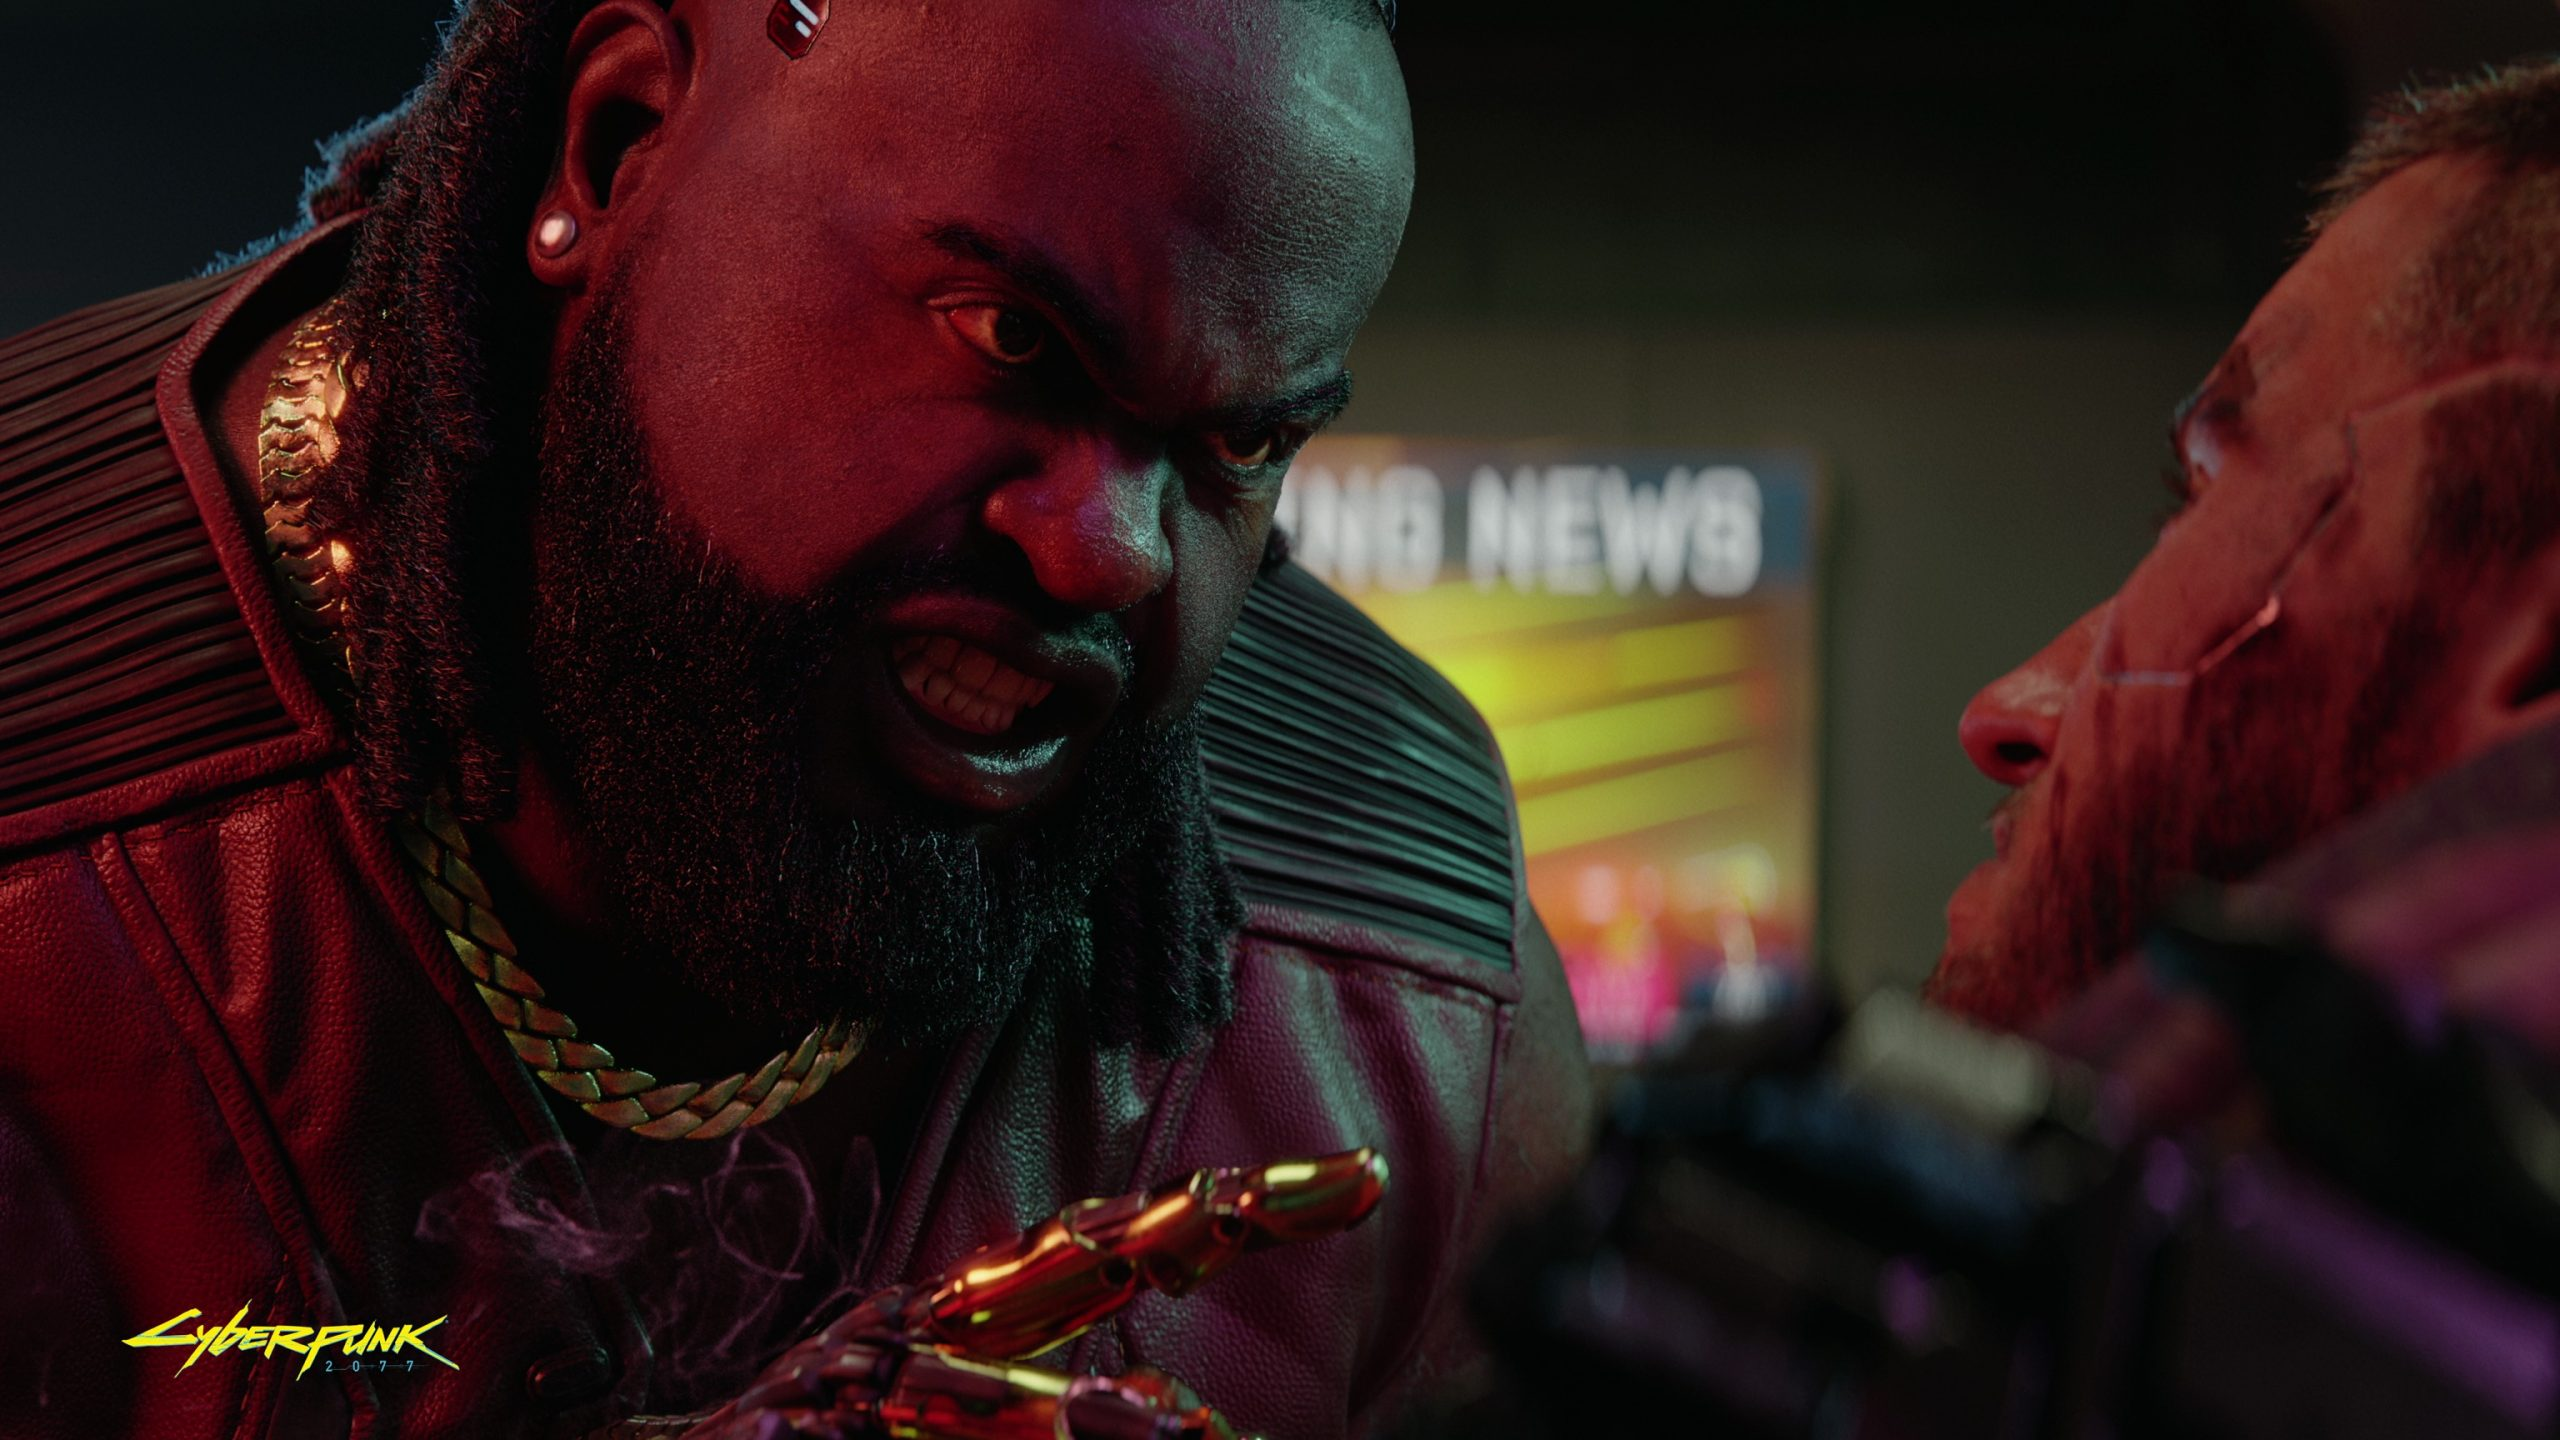 A man stands in a threatening position in Cyberpunk 2077.